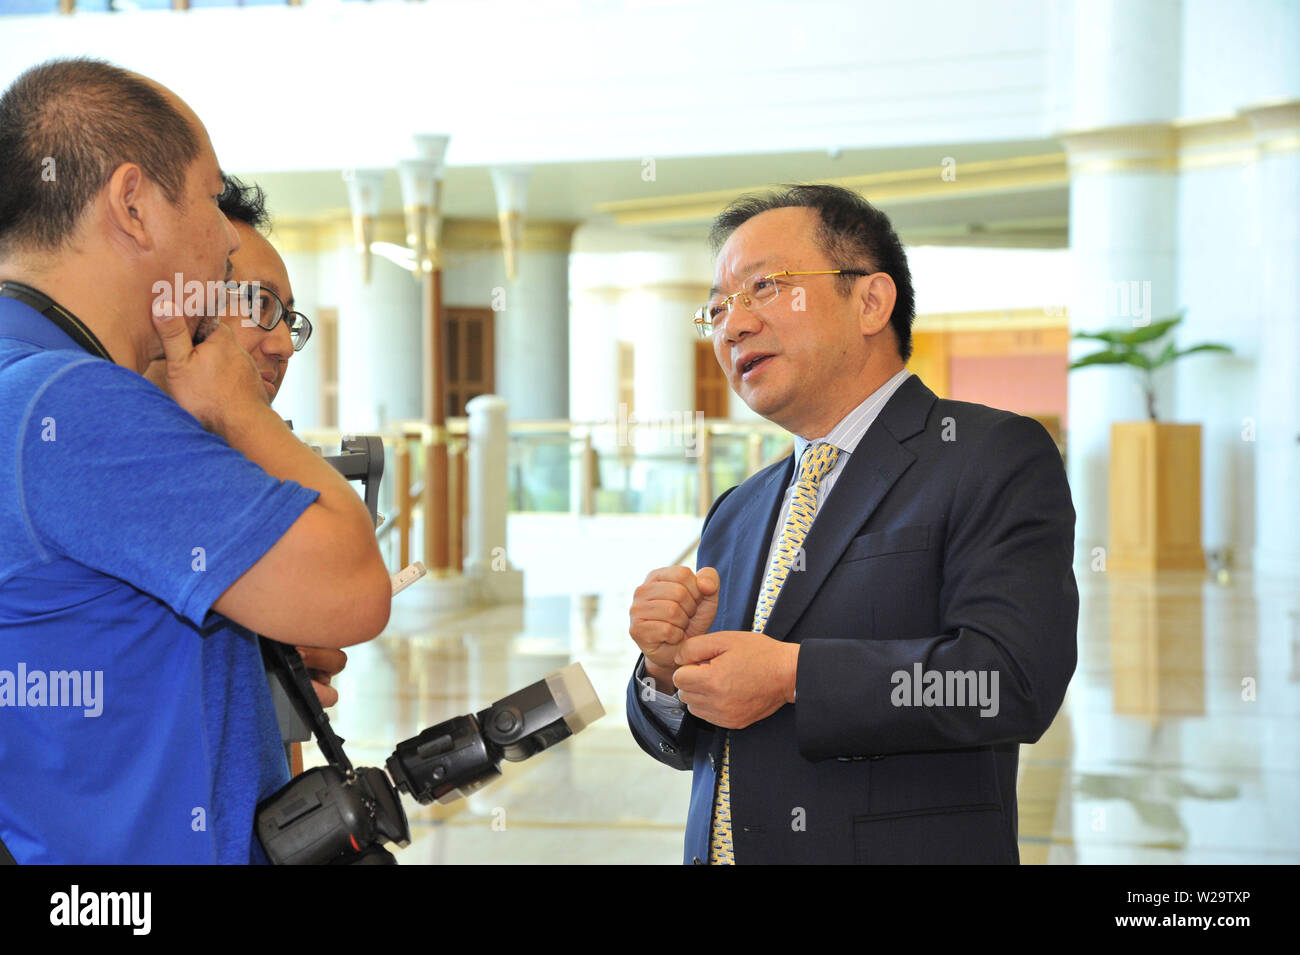 (190707) -- BANDAR SERI BEGAWAN, July 7, 2019 (Xinhua) -- Wang Xiaolin (R), General Manager of the Bank of China (Hong Kong) Brunei Branch, speaks during an interview in Bandar Seri Begawan, Brunei, July 6, 2019. TO GO WITH Interview: BOCHK optimistic over Brunei market despite challenging environment: general manager (Xinhua/Jeffrey Wong) - Stock Image